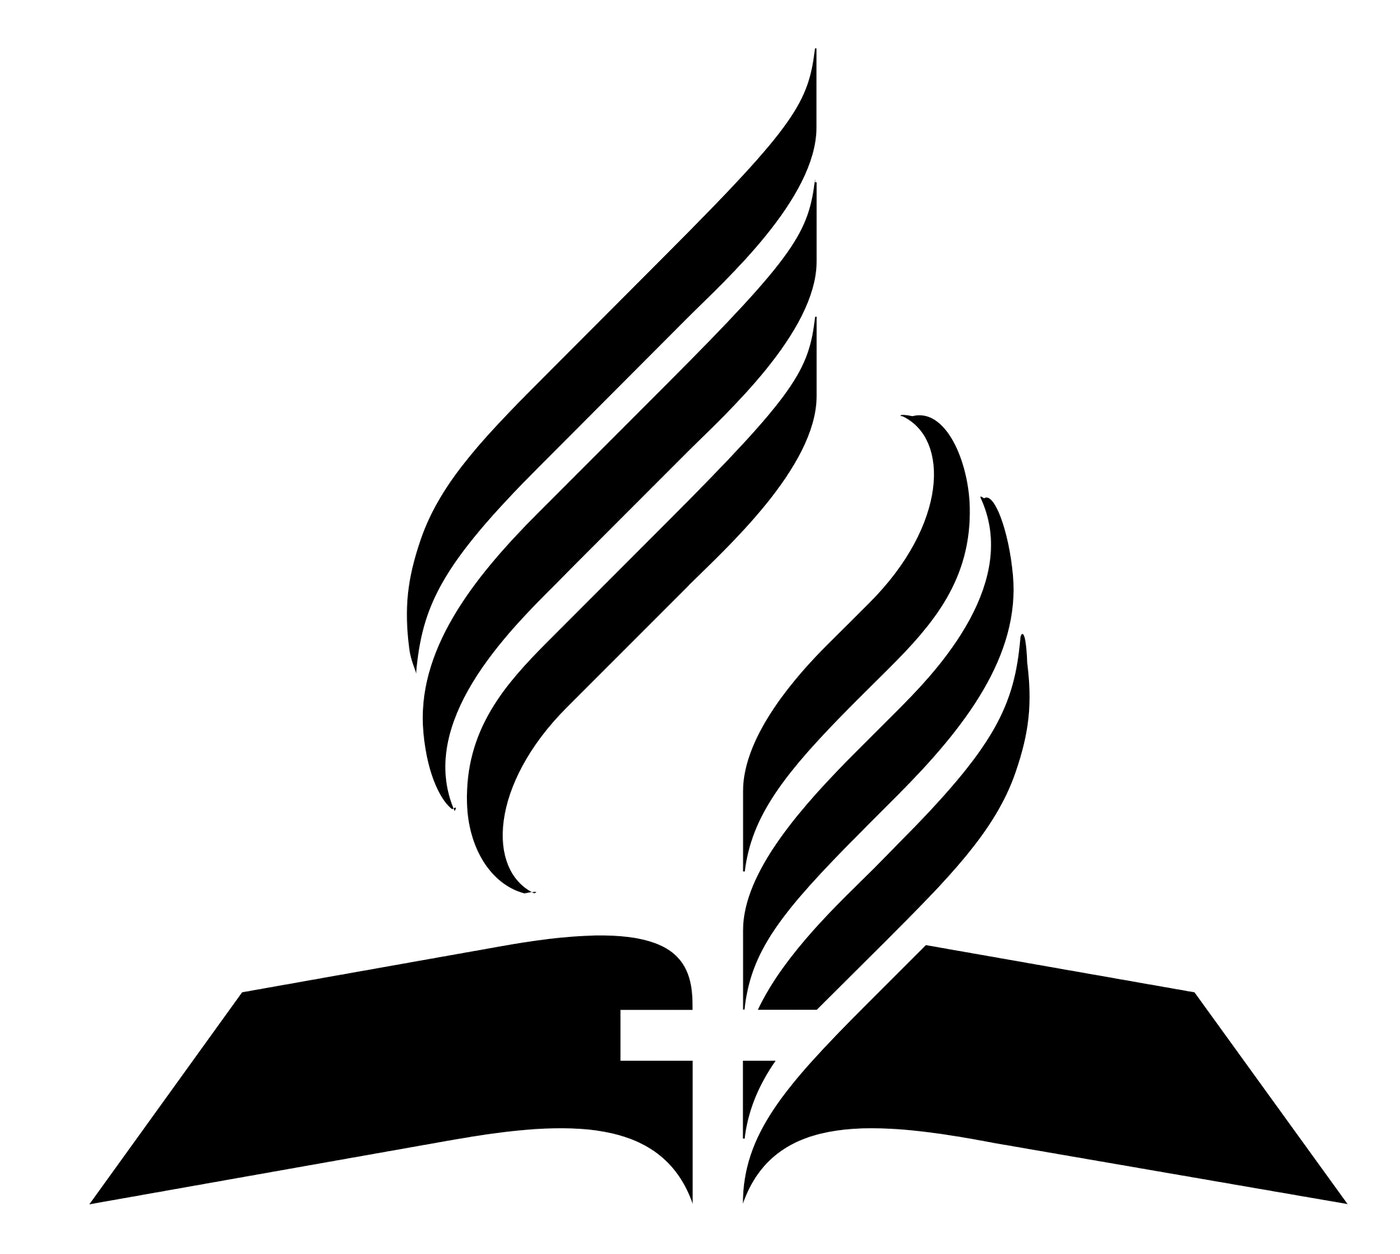 Seventh day adventism religionfacts seventh day adventist symbol biocorpaavc